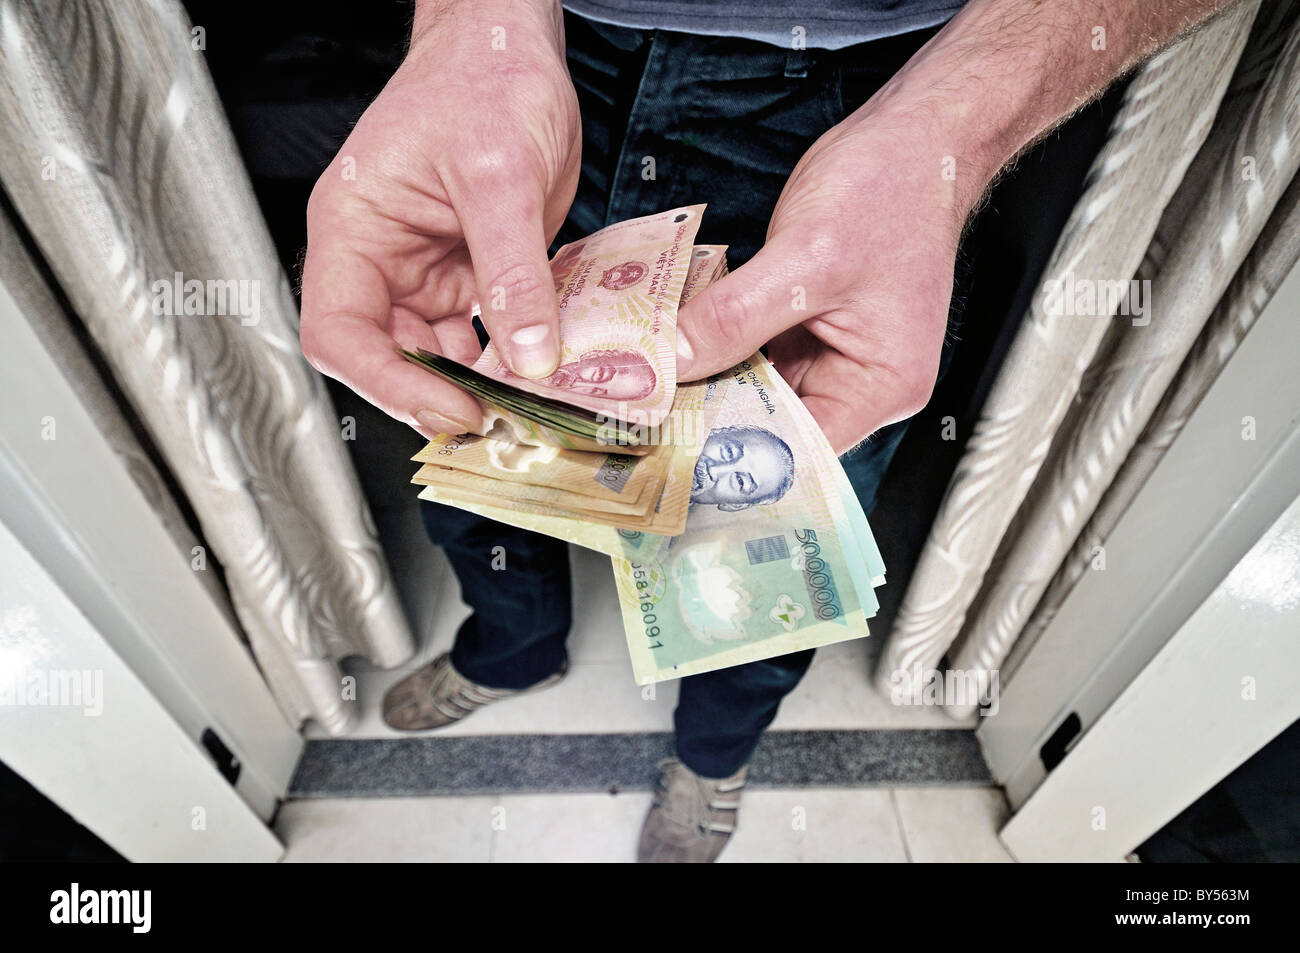 Vnd Stock Photos & Vnd Stock Images - Alamy